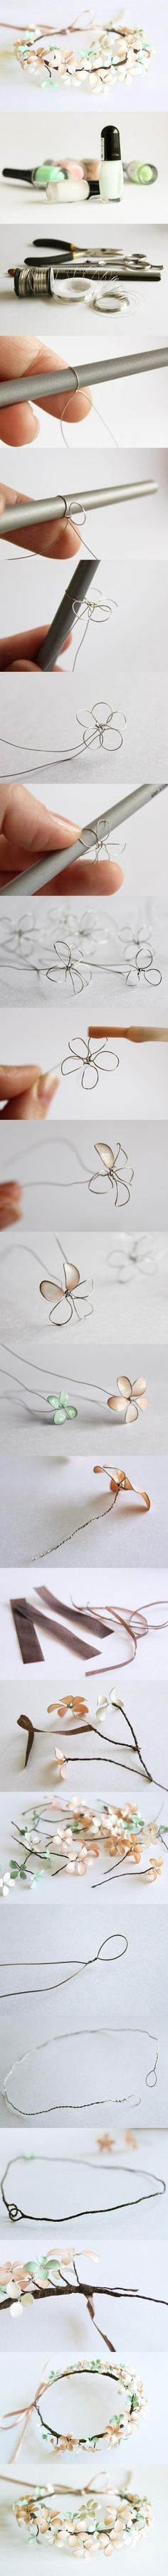 flowers made from thin wire and nail polish